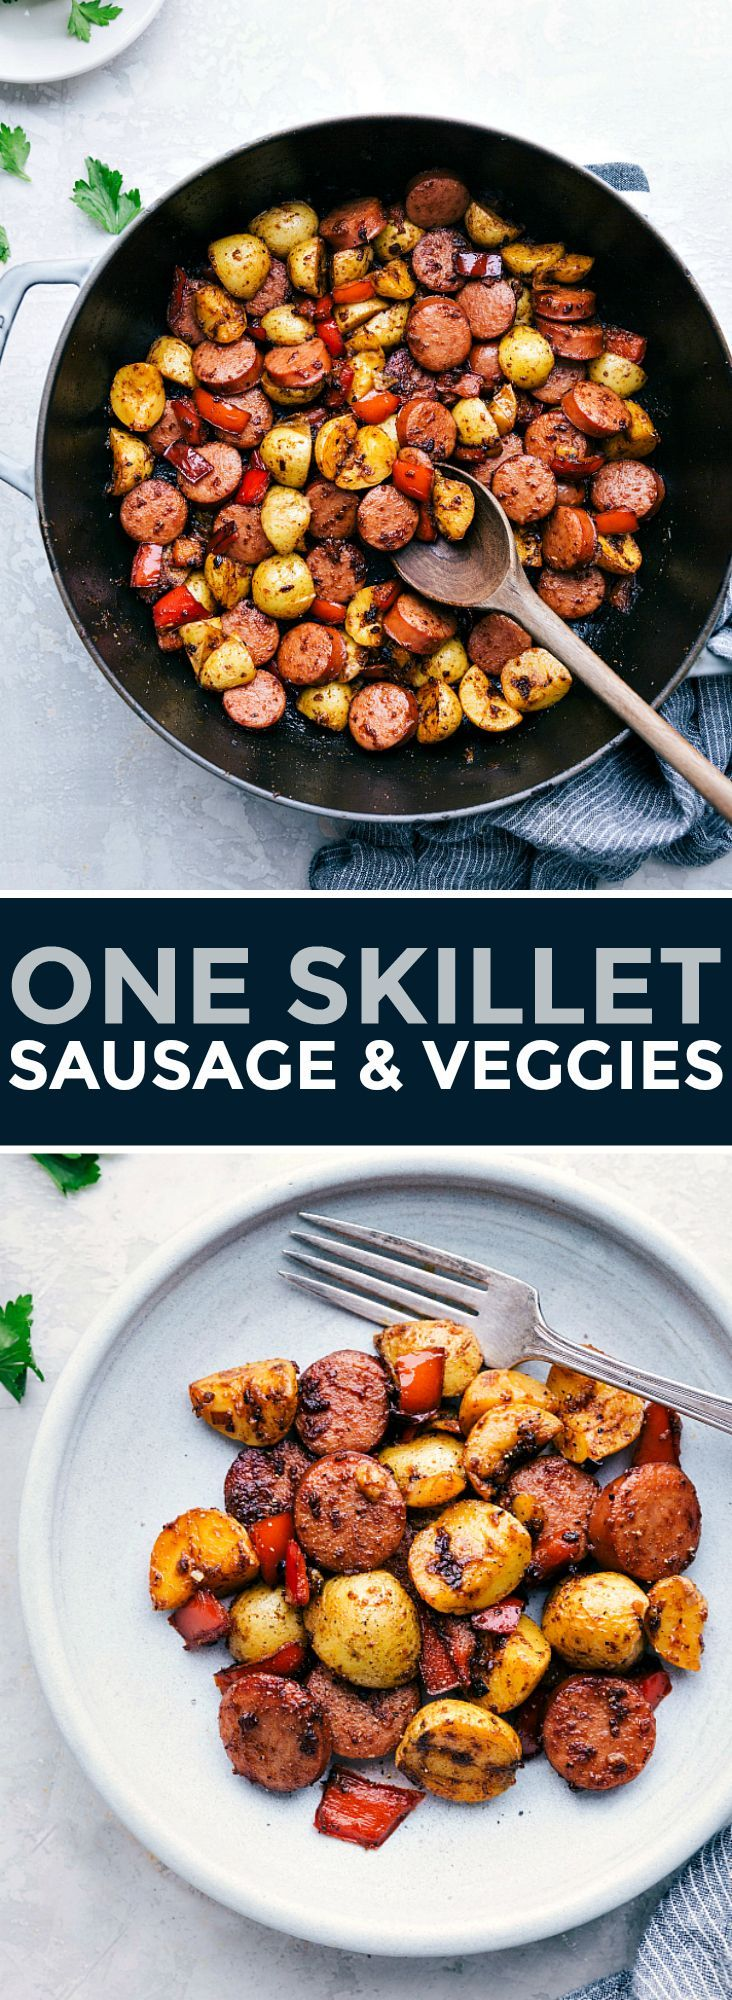 Photo of Sausage and Potatoes Skillet Meal | Chelsea's Messy Apron